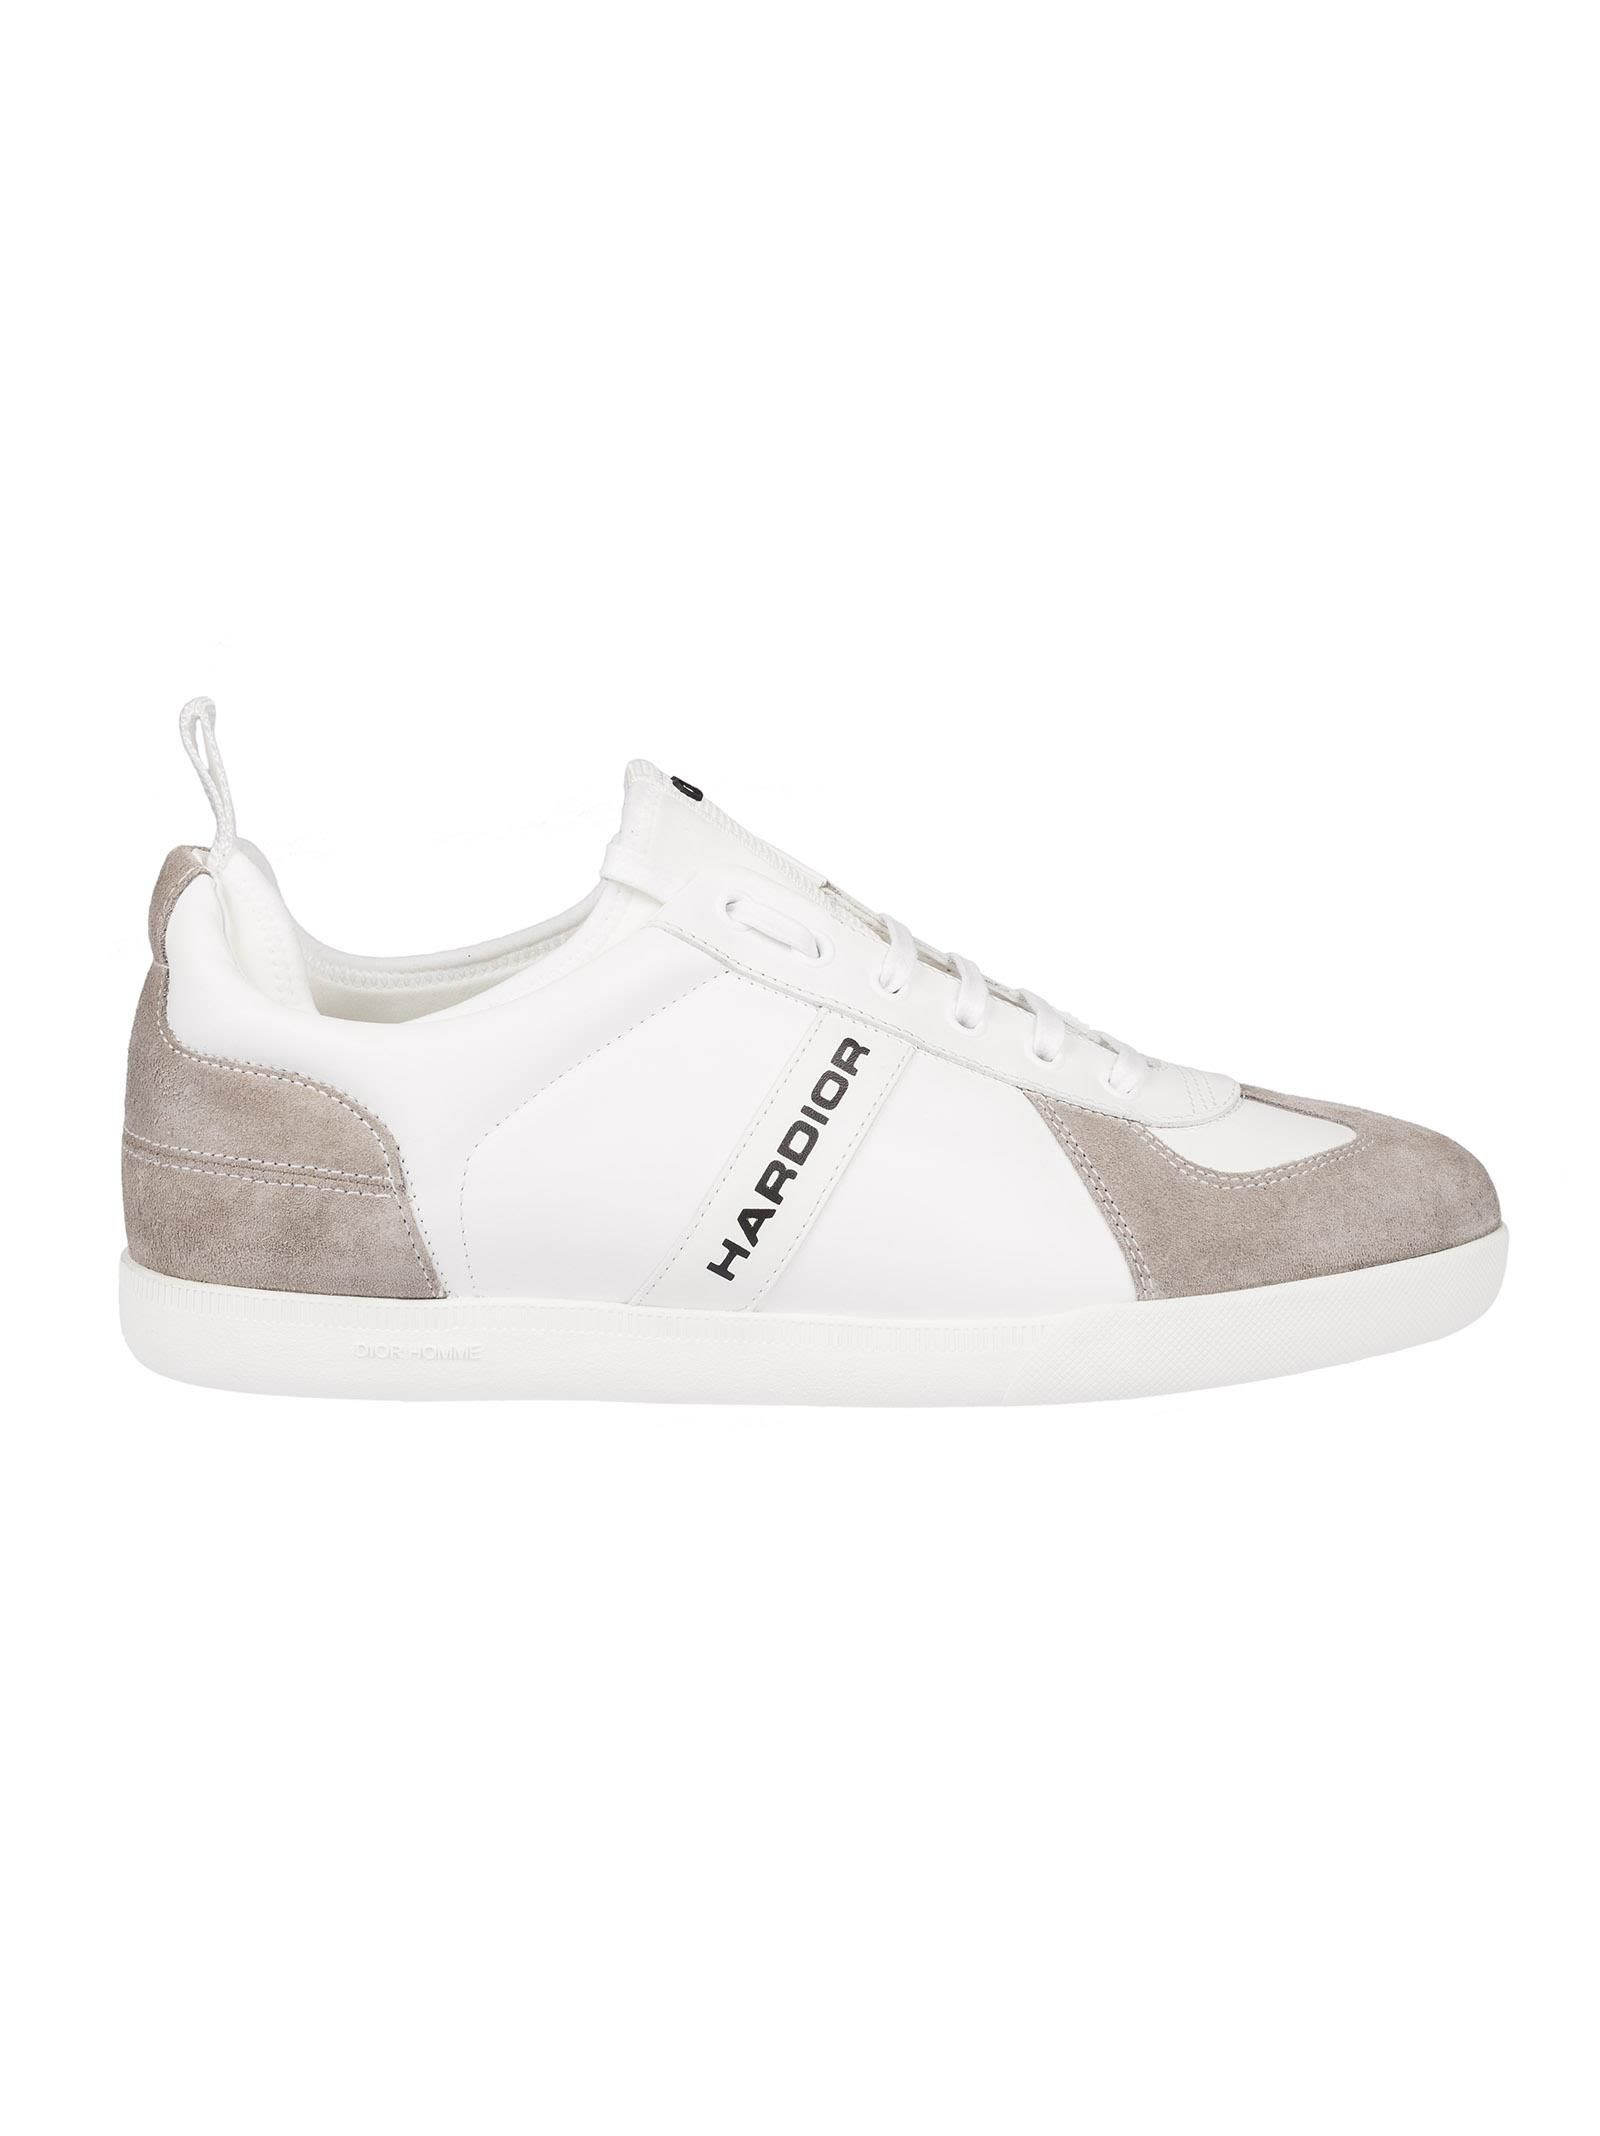 d97d2fdba333 DIOR HOMME HARDIOR SNEAKERS.  diorhomme  shoes     Dior Homme Men ...